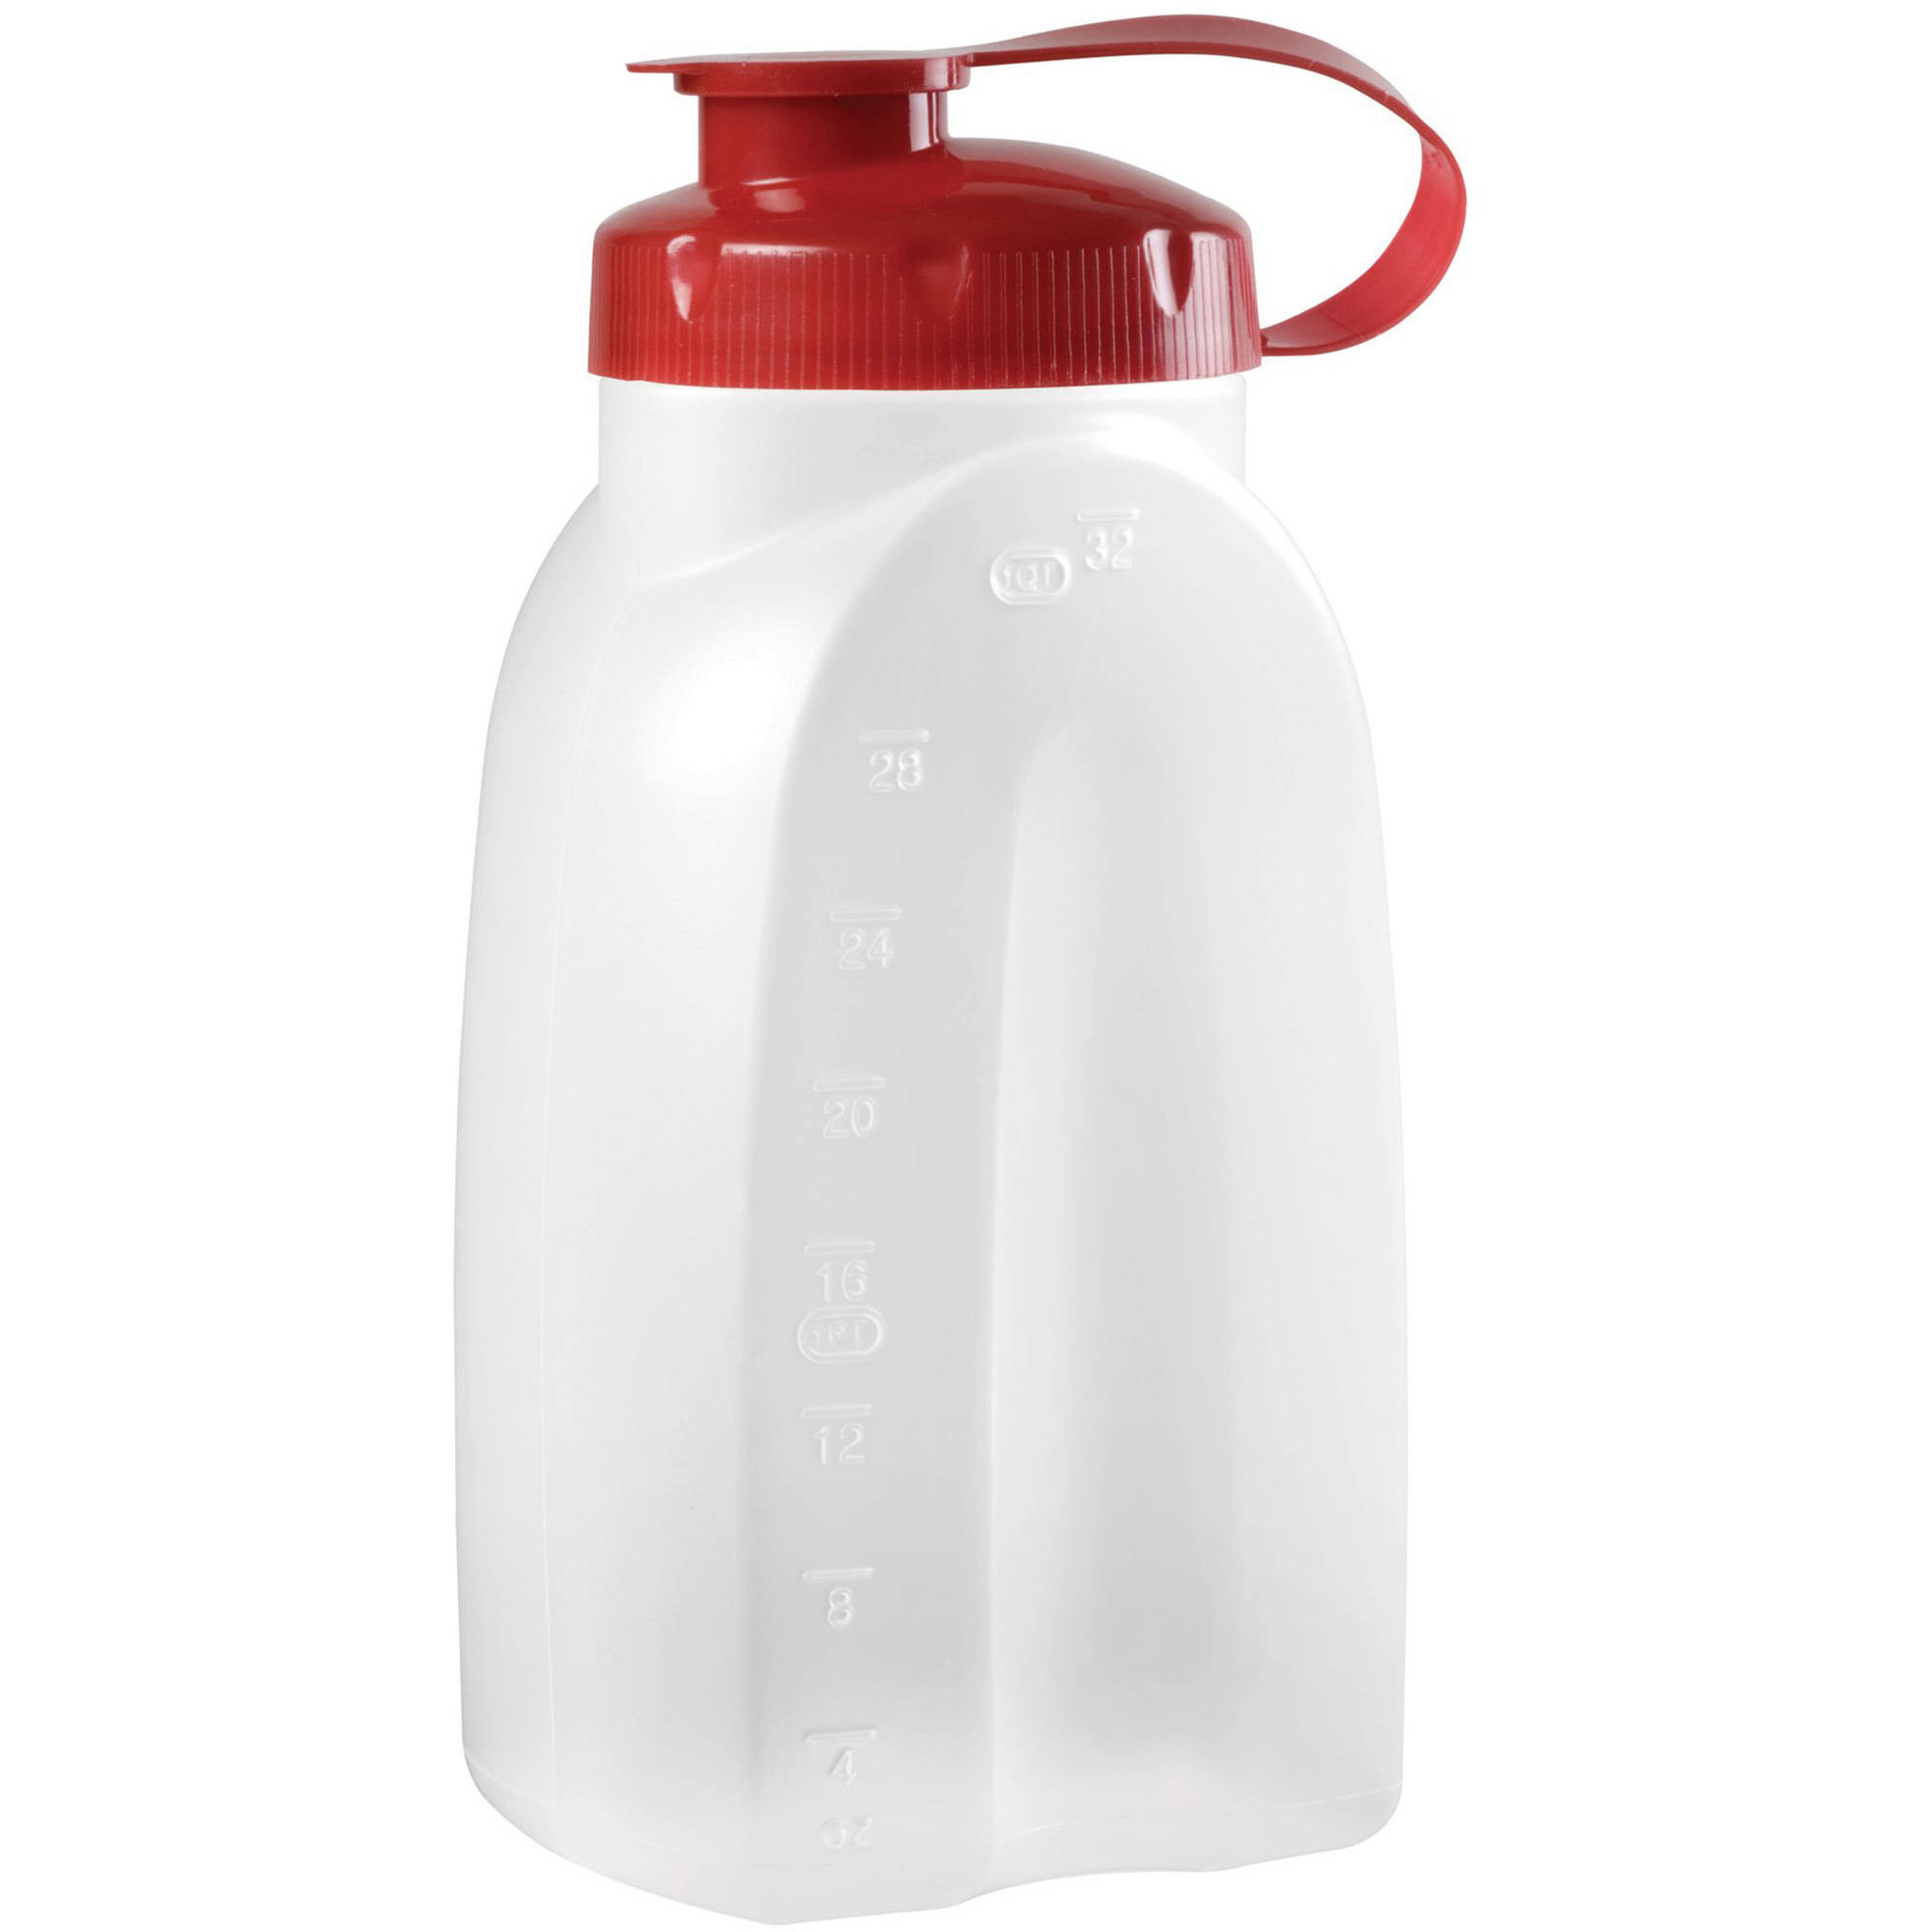 Rubbermaid MixerMate 2-Qt Bottle